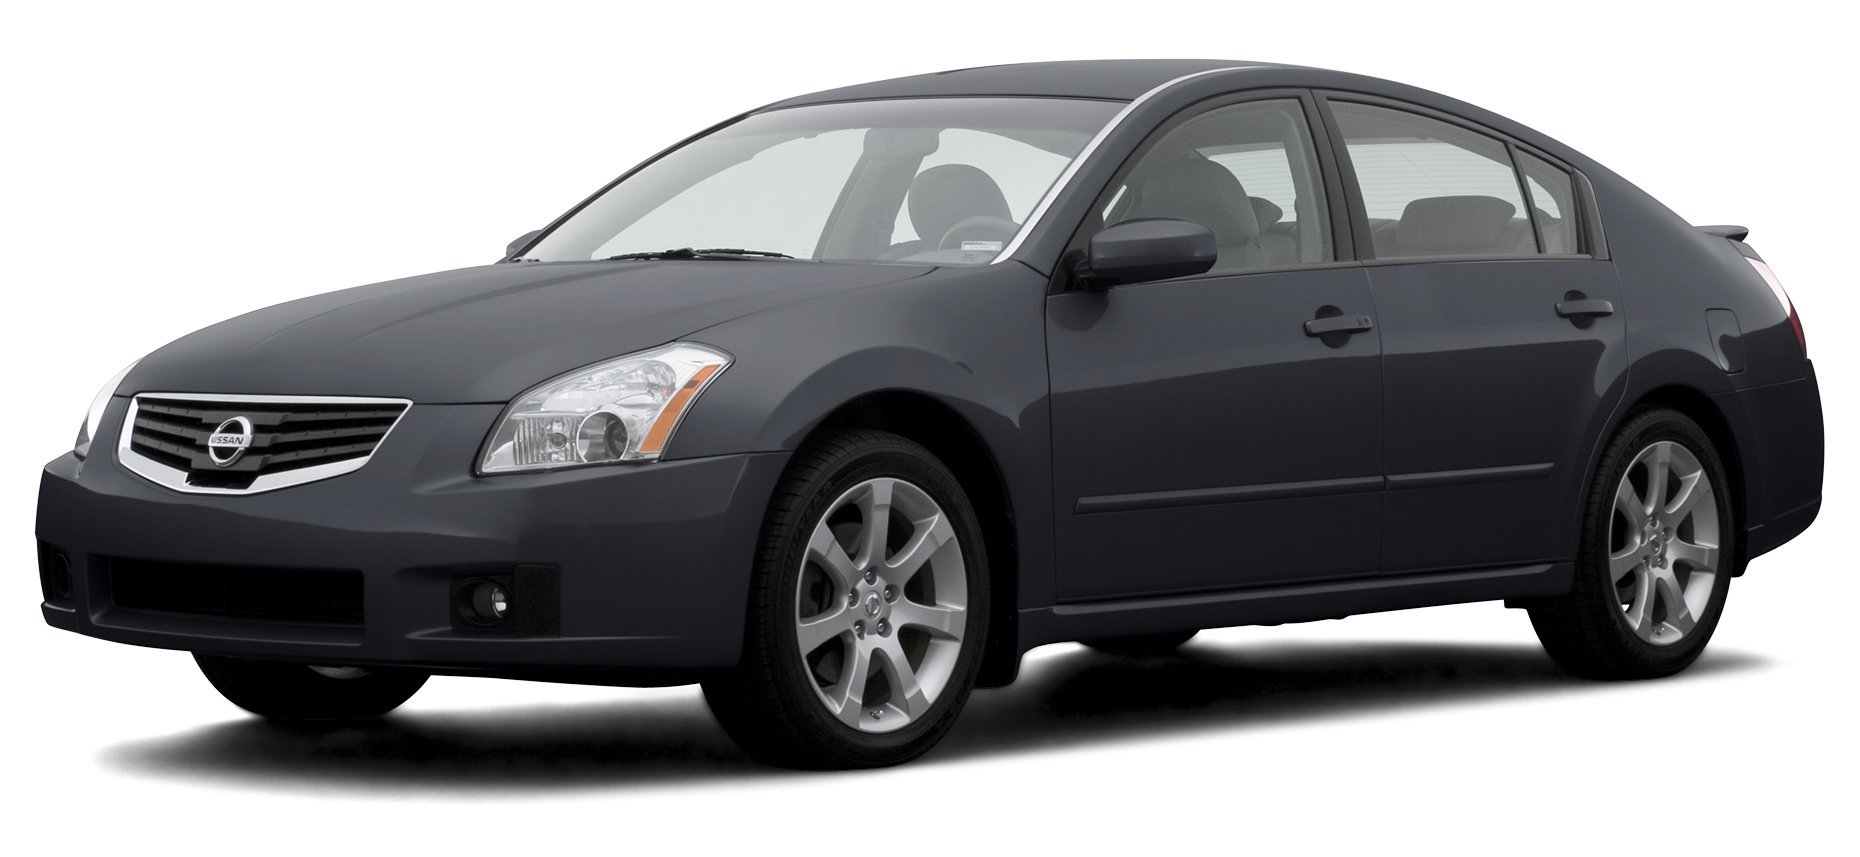 Captivating 2007 Nissan Maxima 3.5 SE, 4 Door Sedan V6 CVT ...